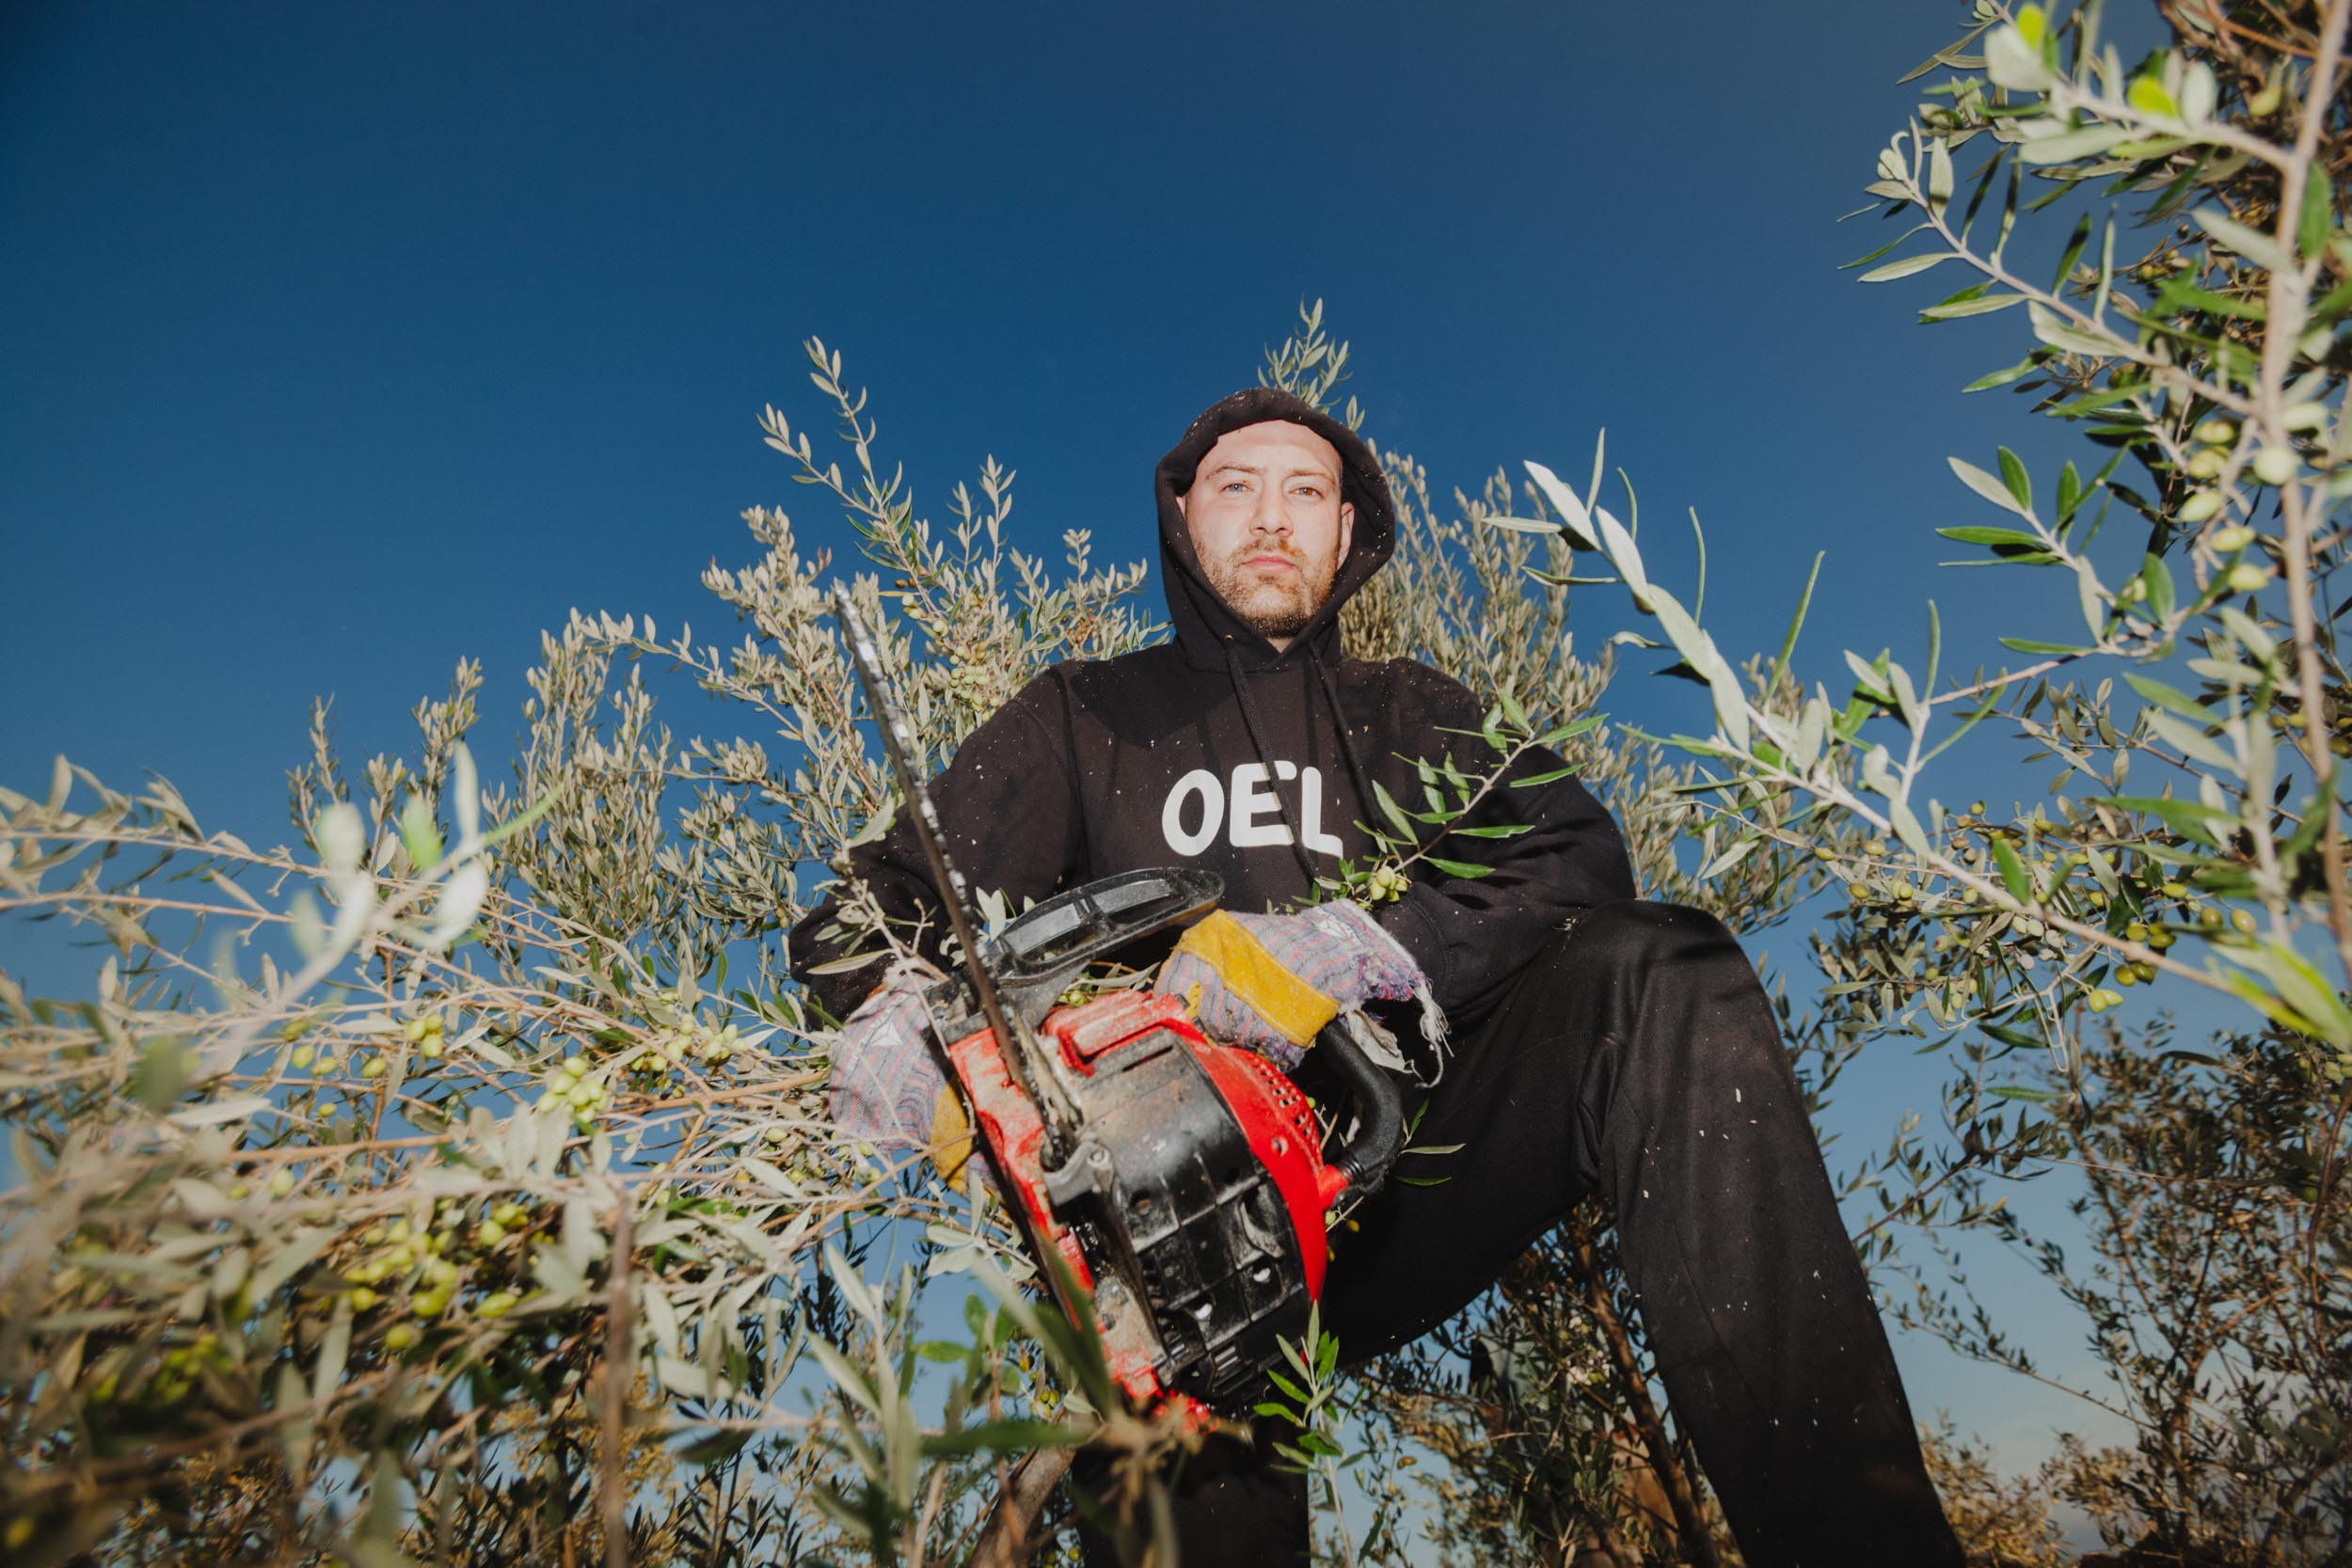 Amadeus working with a chainsaw in the canopy of an olive tree.